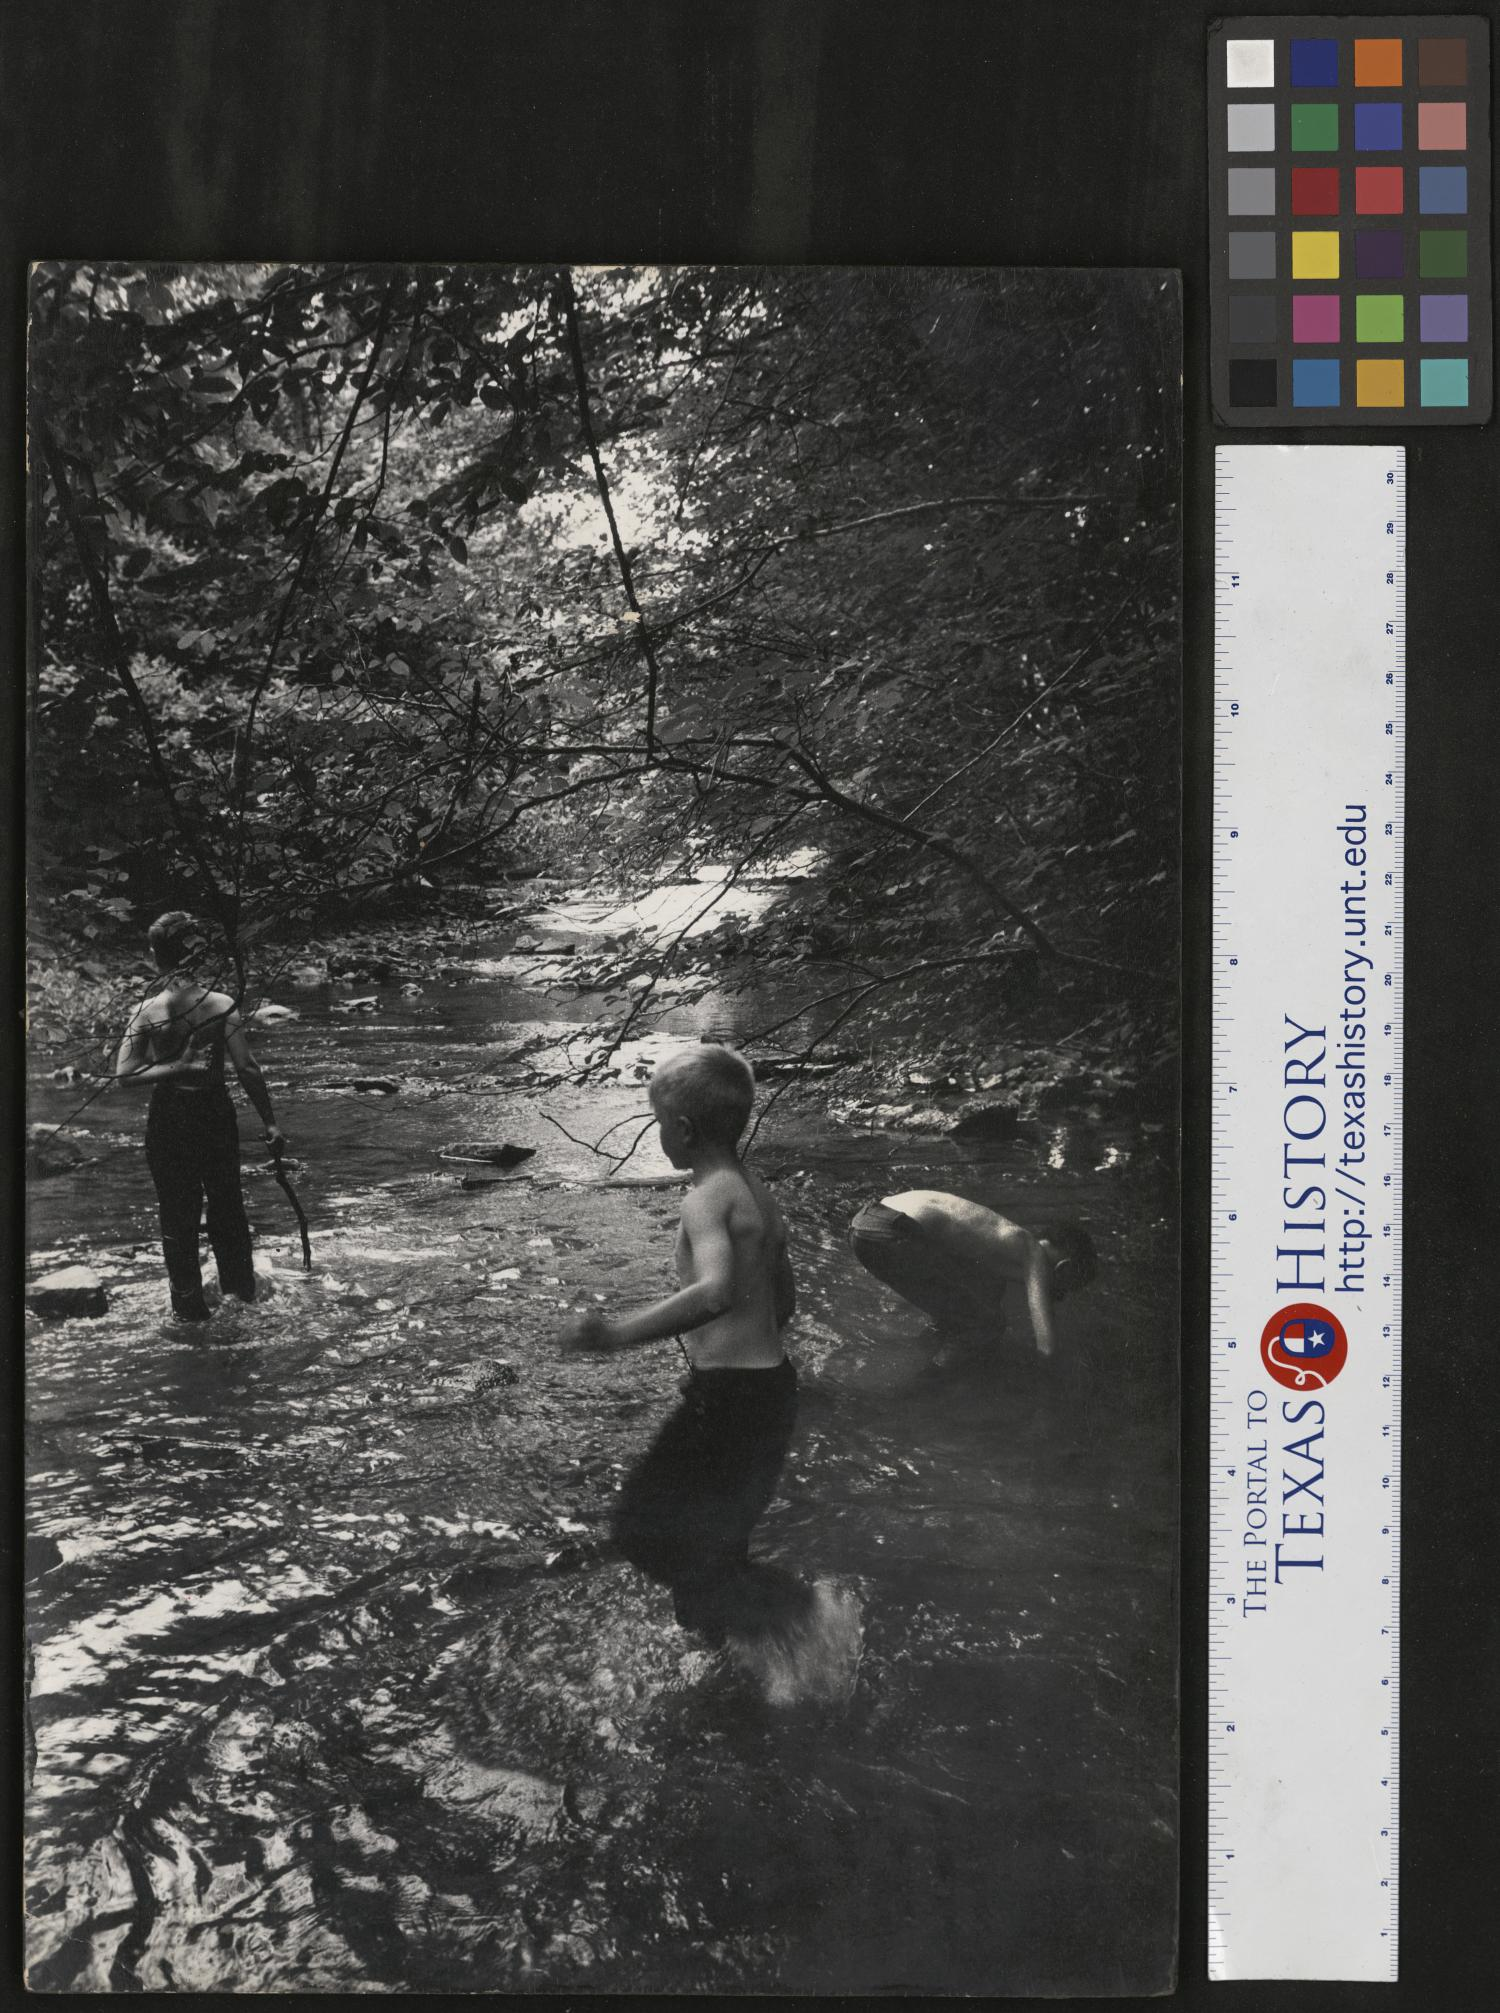 """[Boys Playing in Creek], Photograph of three boys playing in a creek, in Cumberland Gap, Tennessee. In the image, the boys are wearing pants, but no shirts in a creek lined with rocks and large trees. Narrative by Junebug Clark: We are being taught how to catch fish with our bare hands by Jimmy Powell, far right. In the center is my Detroit cousin Tom Krent who made trips to Tennessee with us. I, Junebug Clark am on the left. Jimmy is showing us how to feel under rocks and catch fish, or craw dads and snapping turtles. We are on my fathers farm, """"Vertical Acres"""" fishing in Keg Branch. Photo by: Joe Clark, HBSS. Clark PhotoFile: 0000-0015-32 mounted on wood,"""